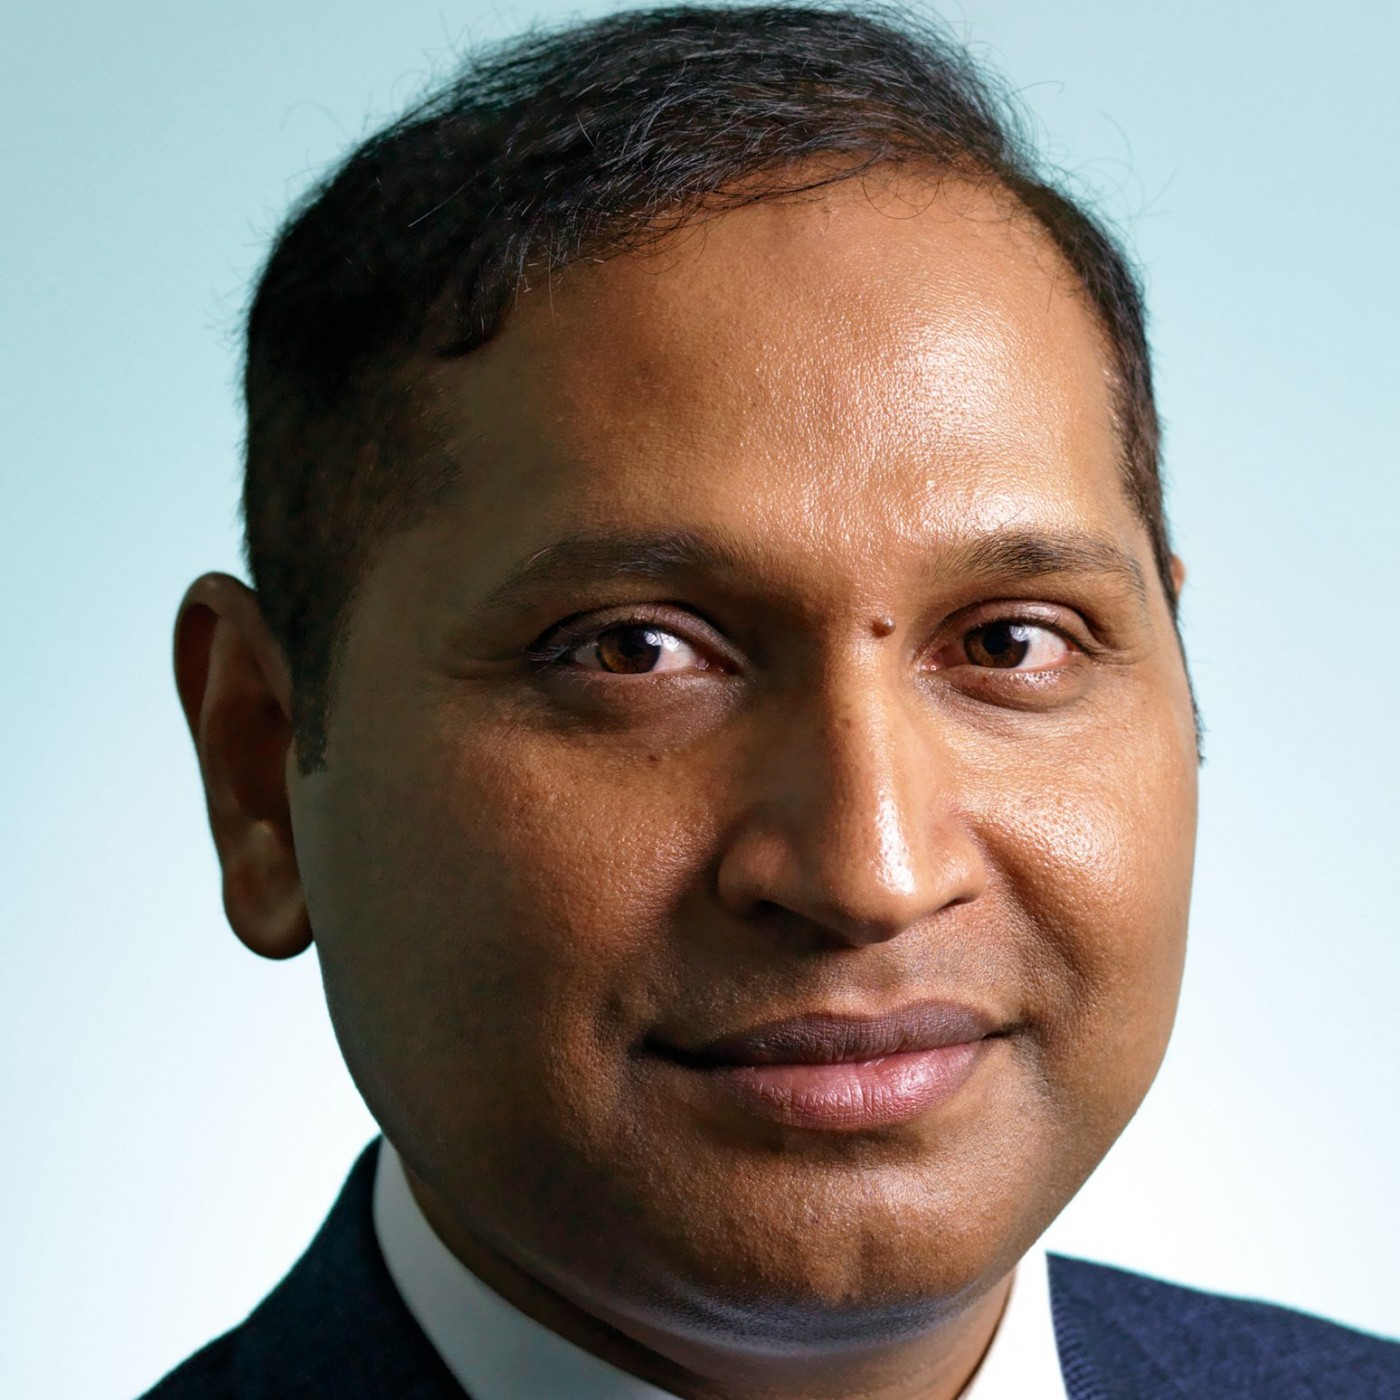 Keller ASEAN Managing Director Deepak Raj interview for CEO Magazine